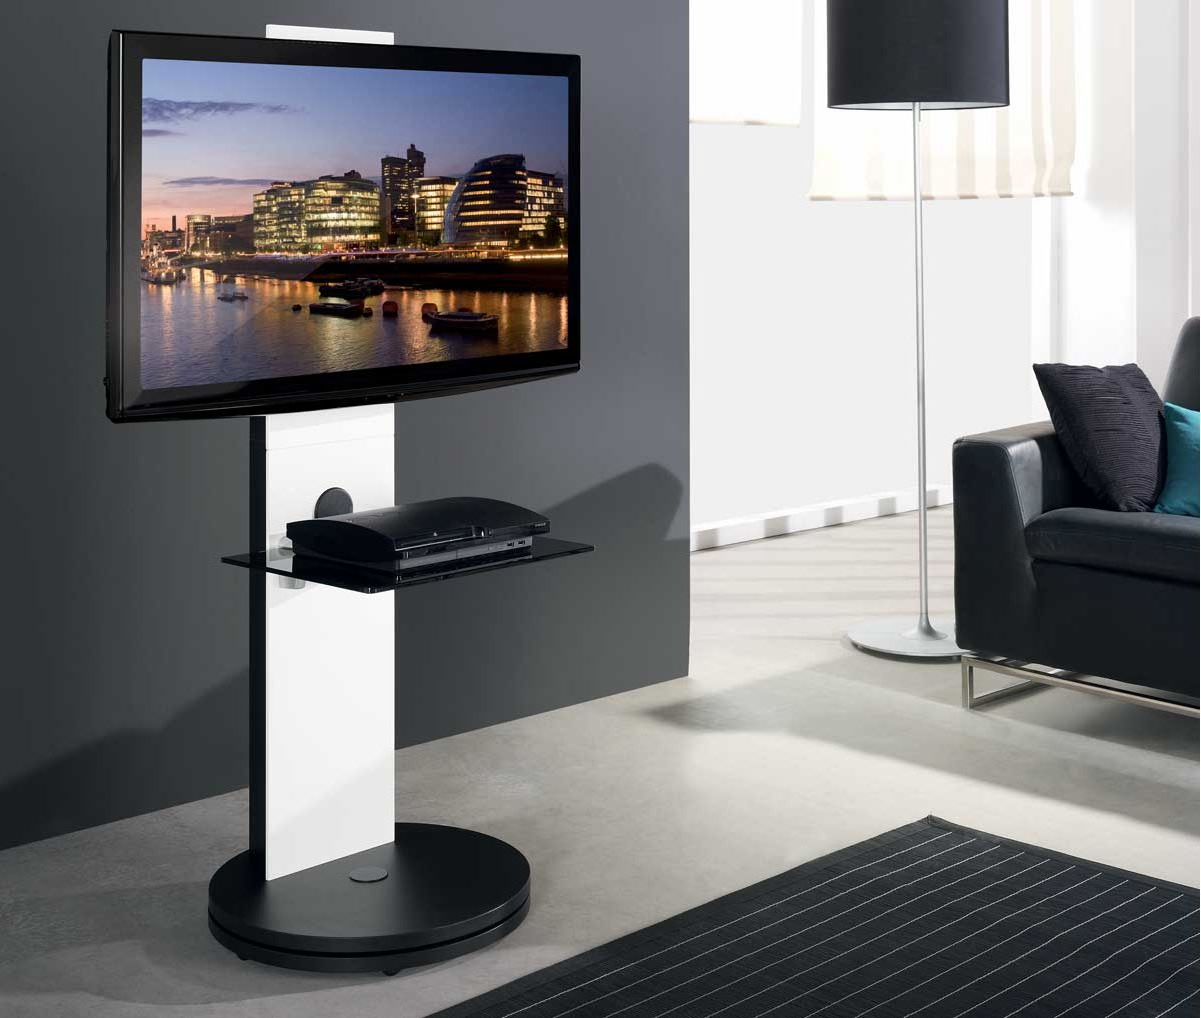 B Tech Btf811 White Corner Cantilever Tv Stand Throughout Modern Black Floor Glass Tv Stands With Mount (View 8 of 20)